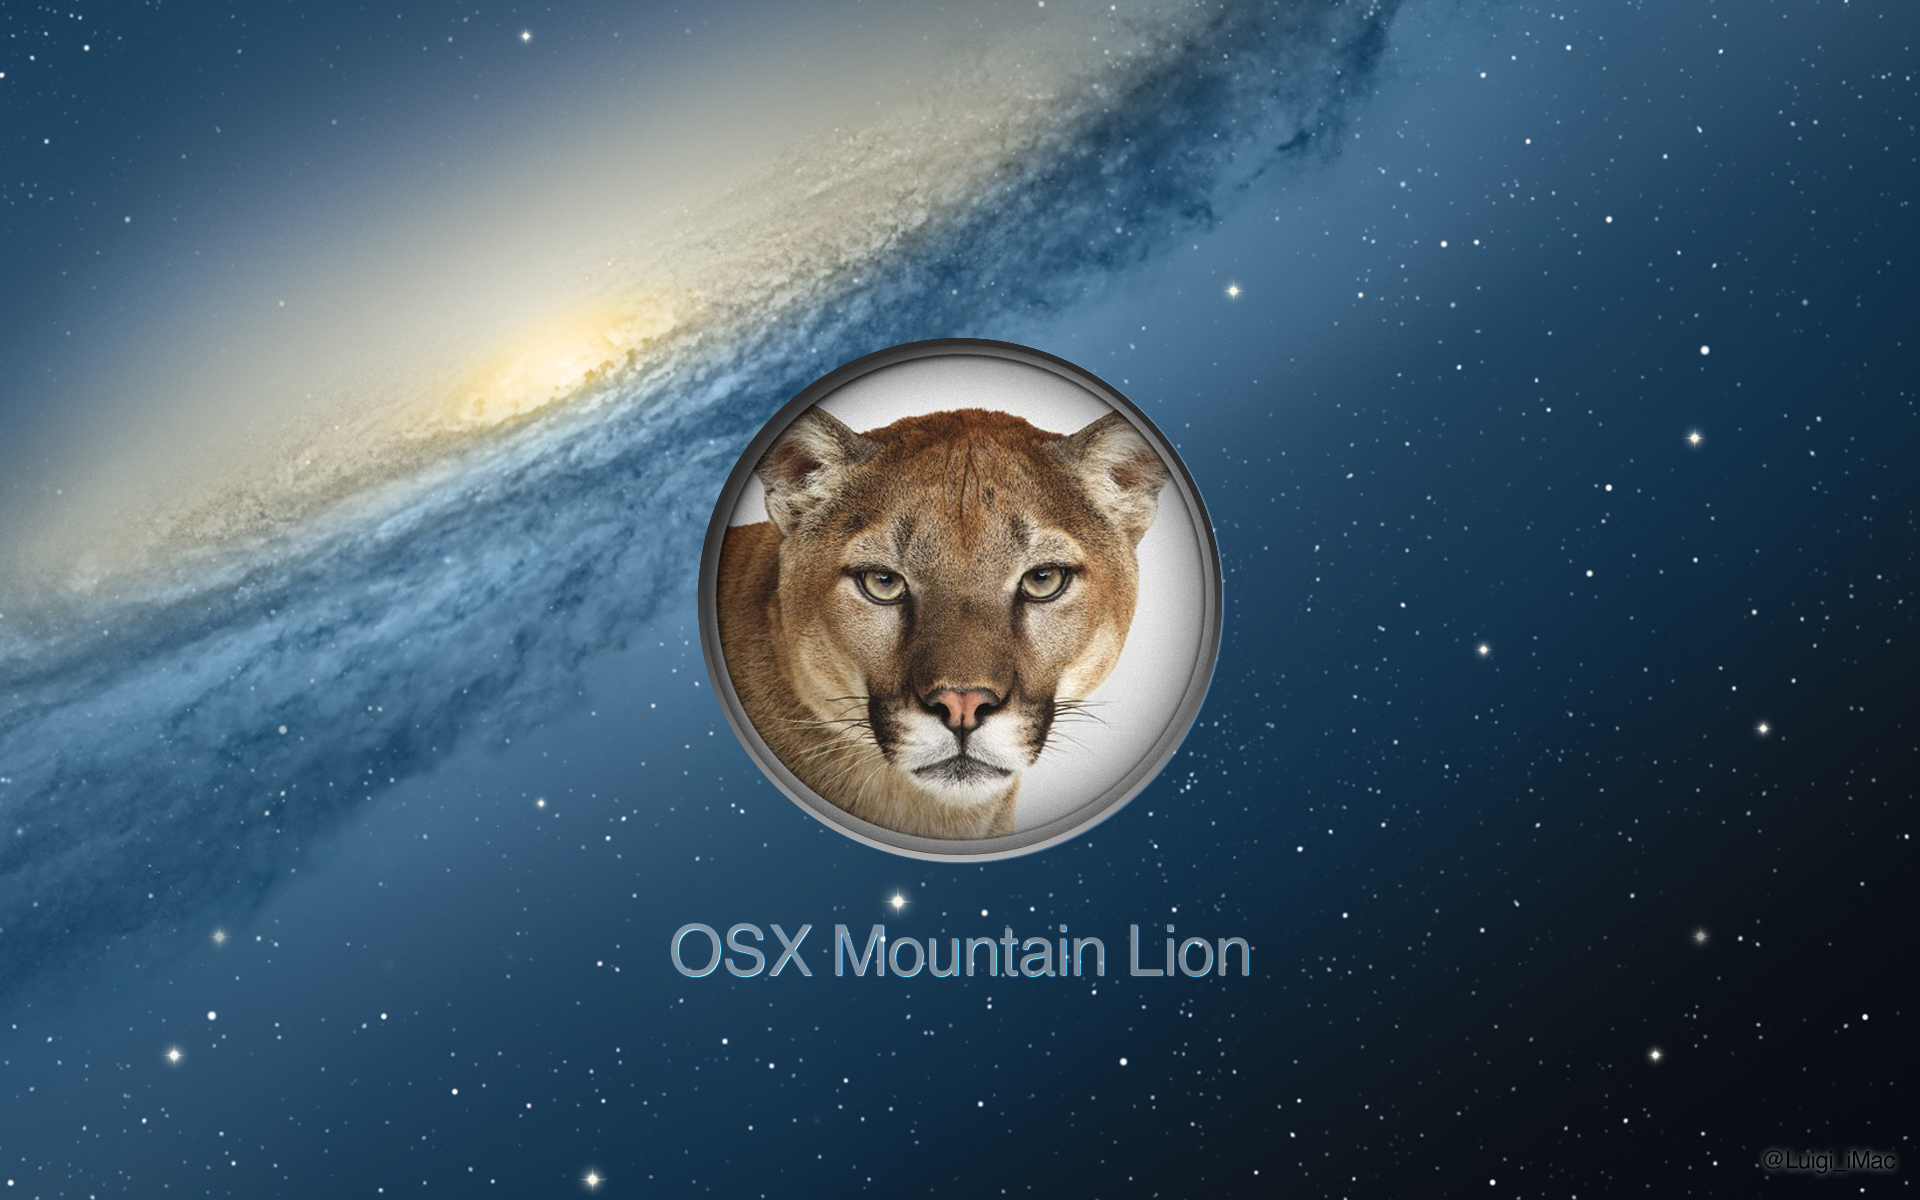 Apple OS X Mountain Lion Demo - Apple+OSX+Mountain+Lion+screenshot1.jpg